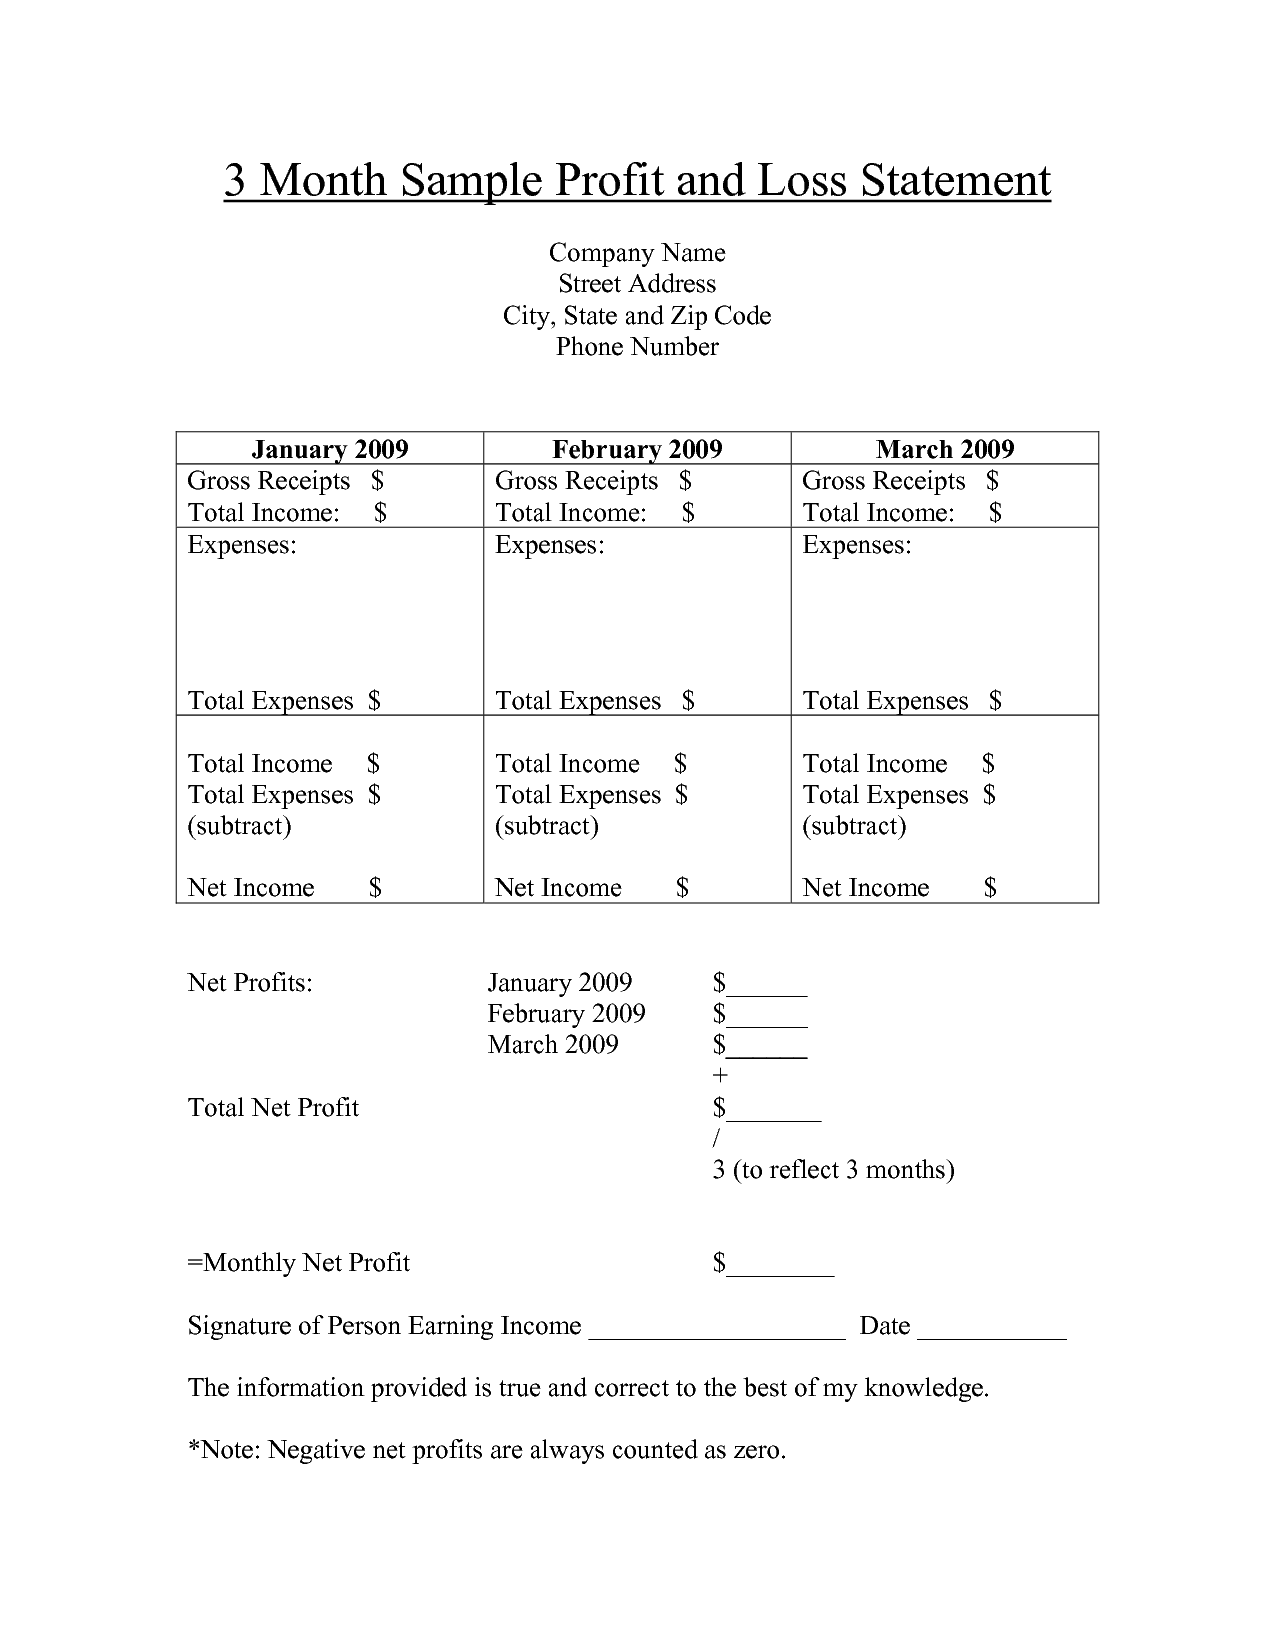 Free Printable Profit and Loss Statement Form for Home Care Bing – Quarterly Profit Loss Statement